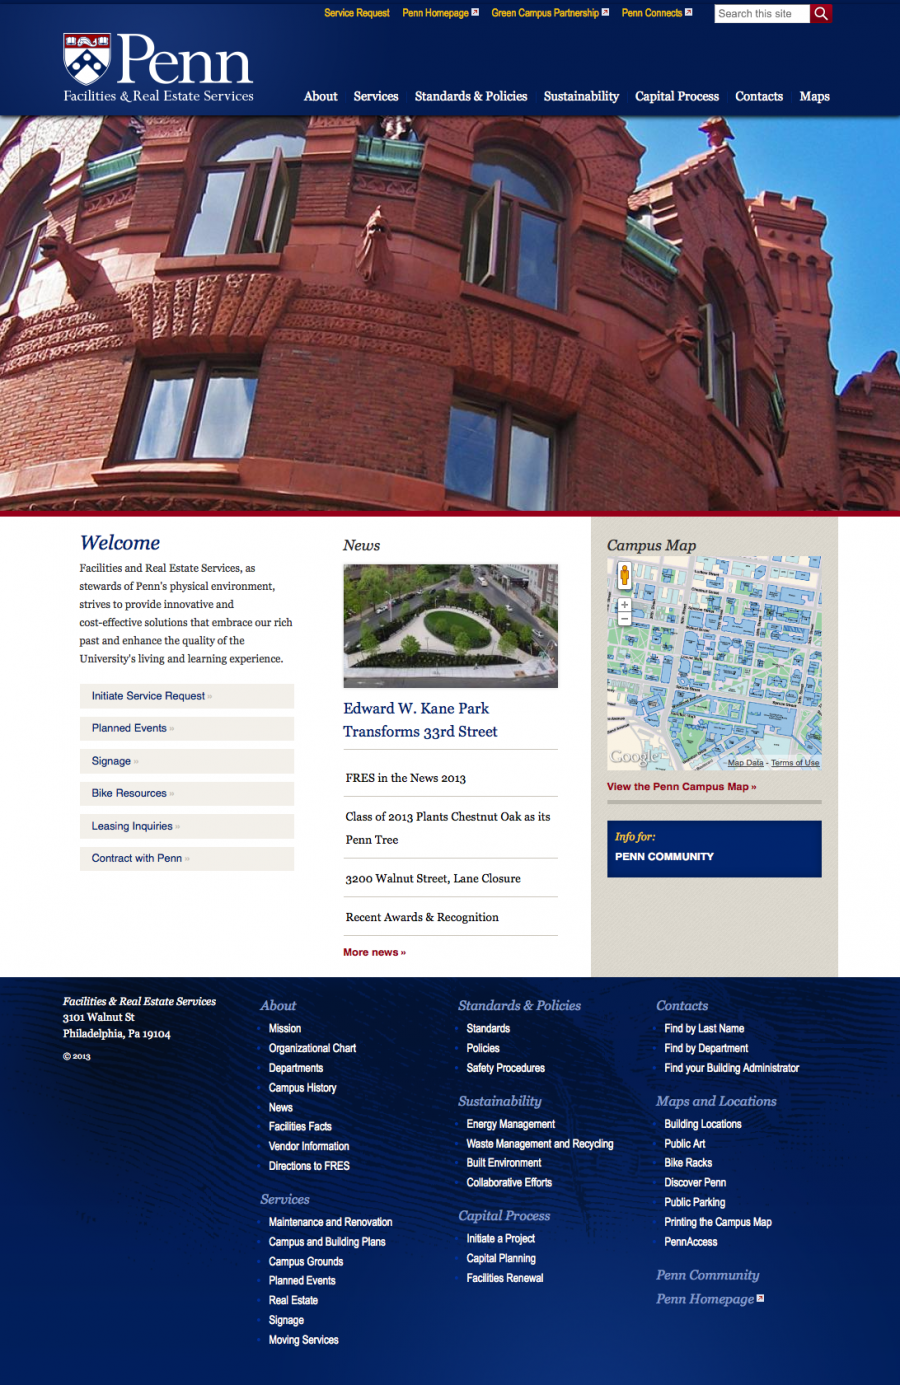 Penn Penn Facilities and Real Estate Services Home Page